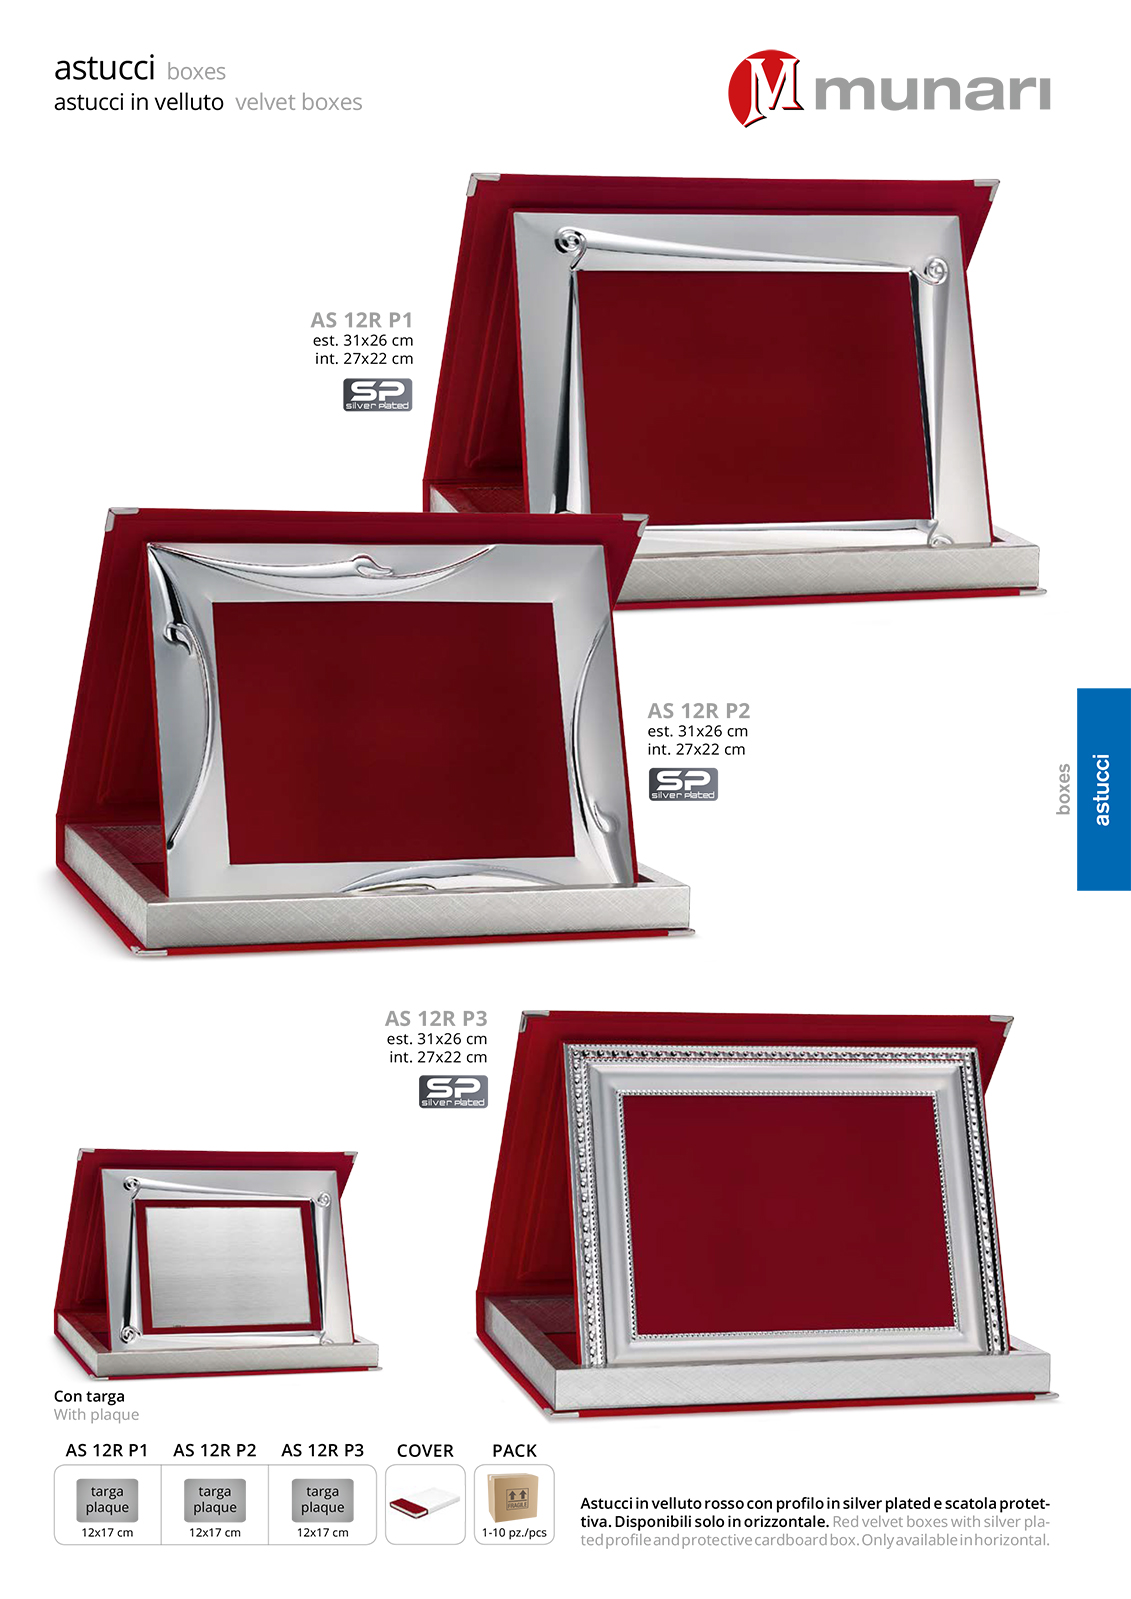 Red Velvet Boxes AS 12R P1 with Silver Plated Profile